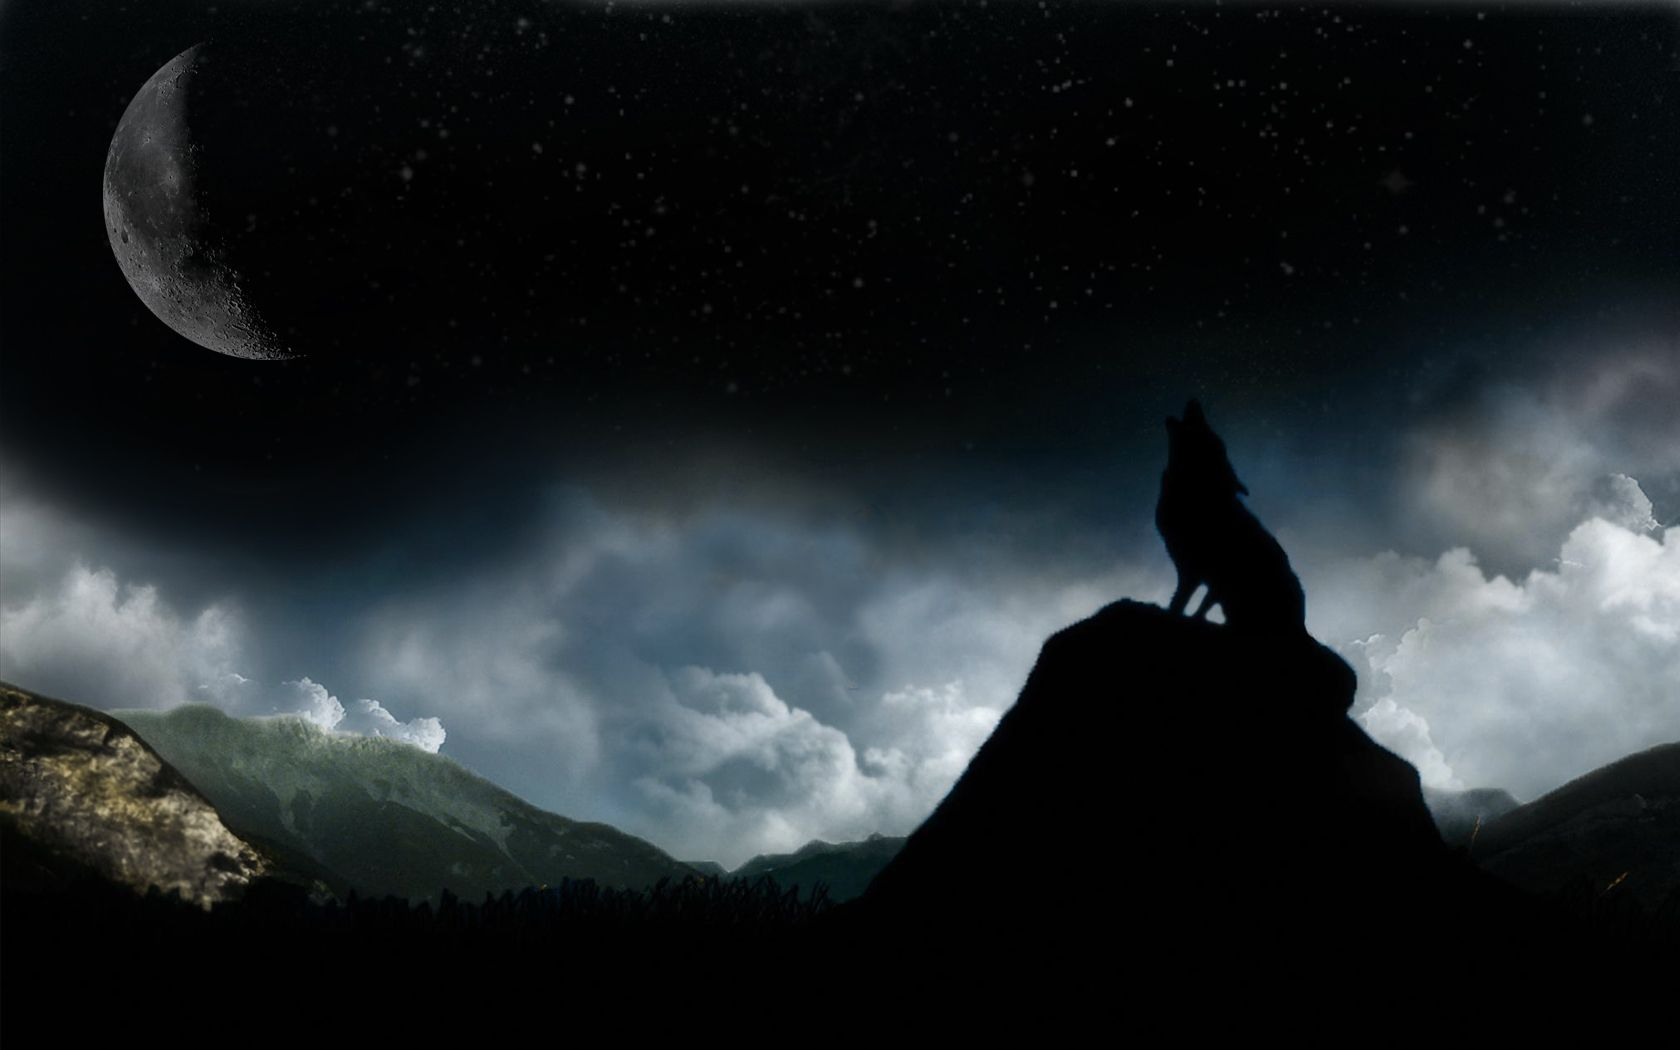 Black Moon Wallpaper Hd Posted By Samantha Cunningham